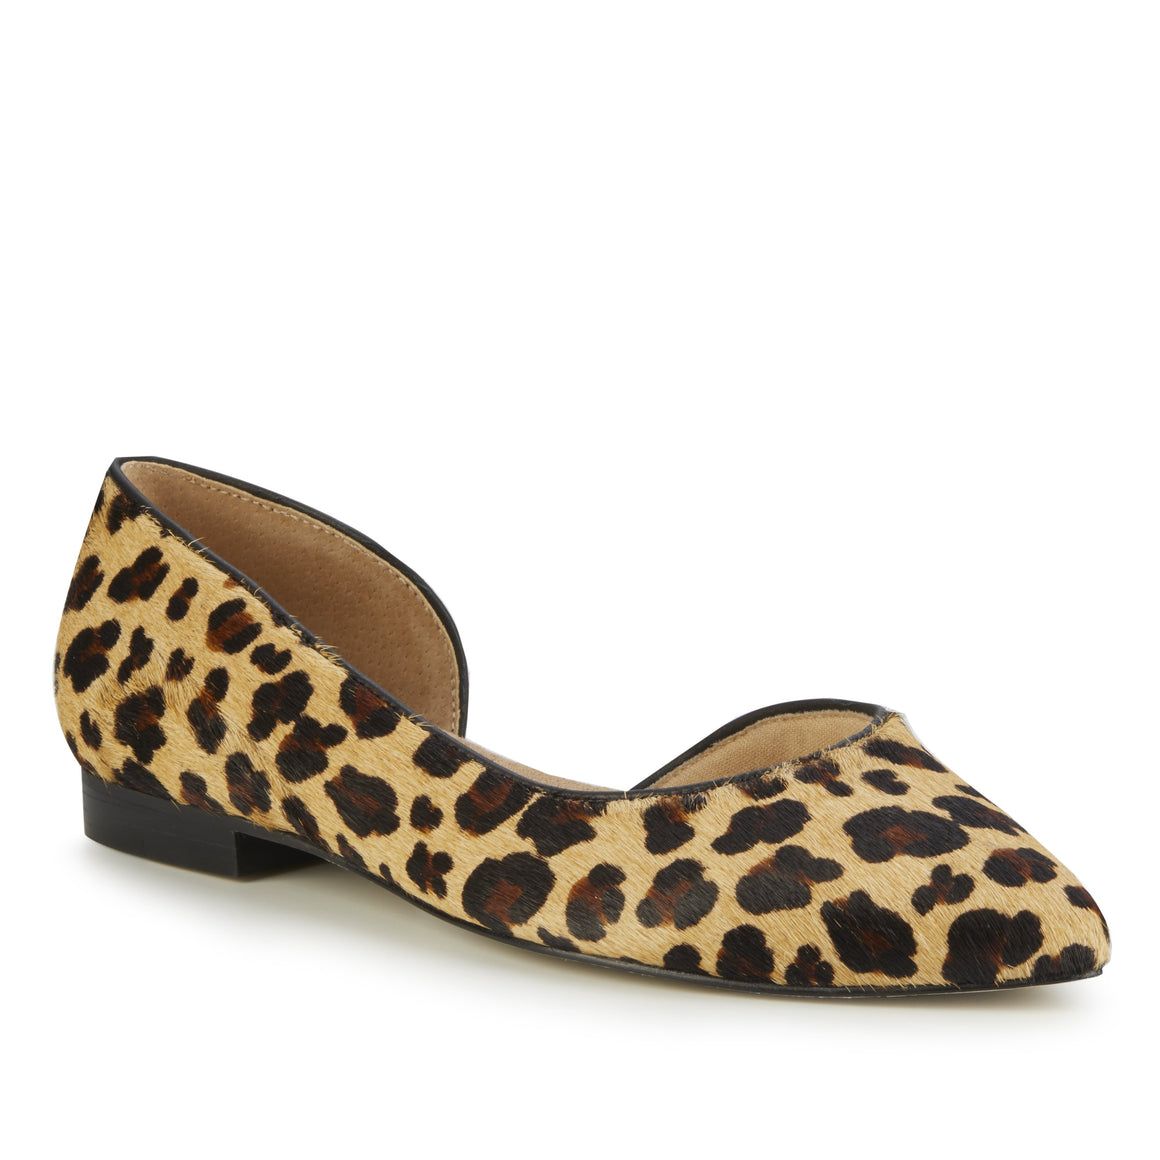 Women's Comfort Flat- Raya in Leopard Calf Hair